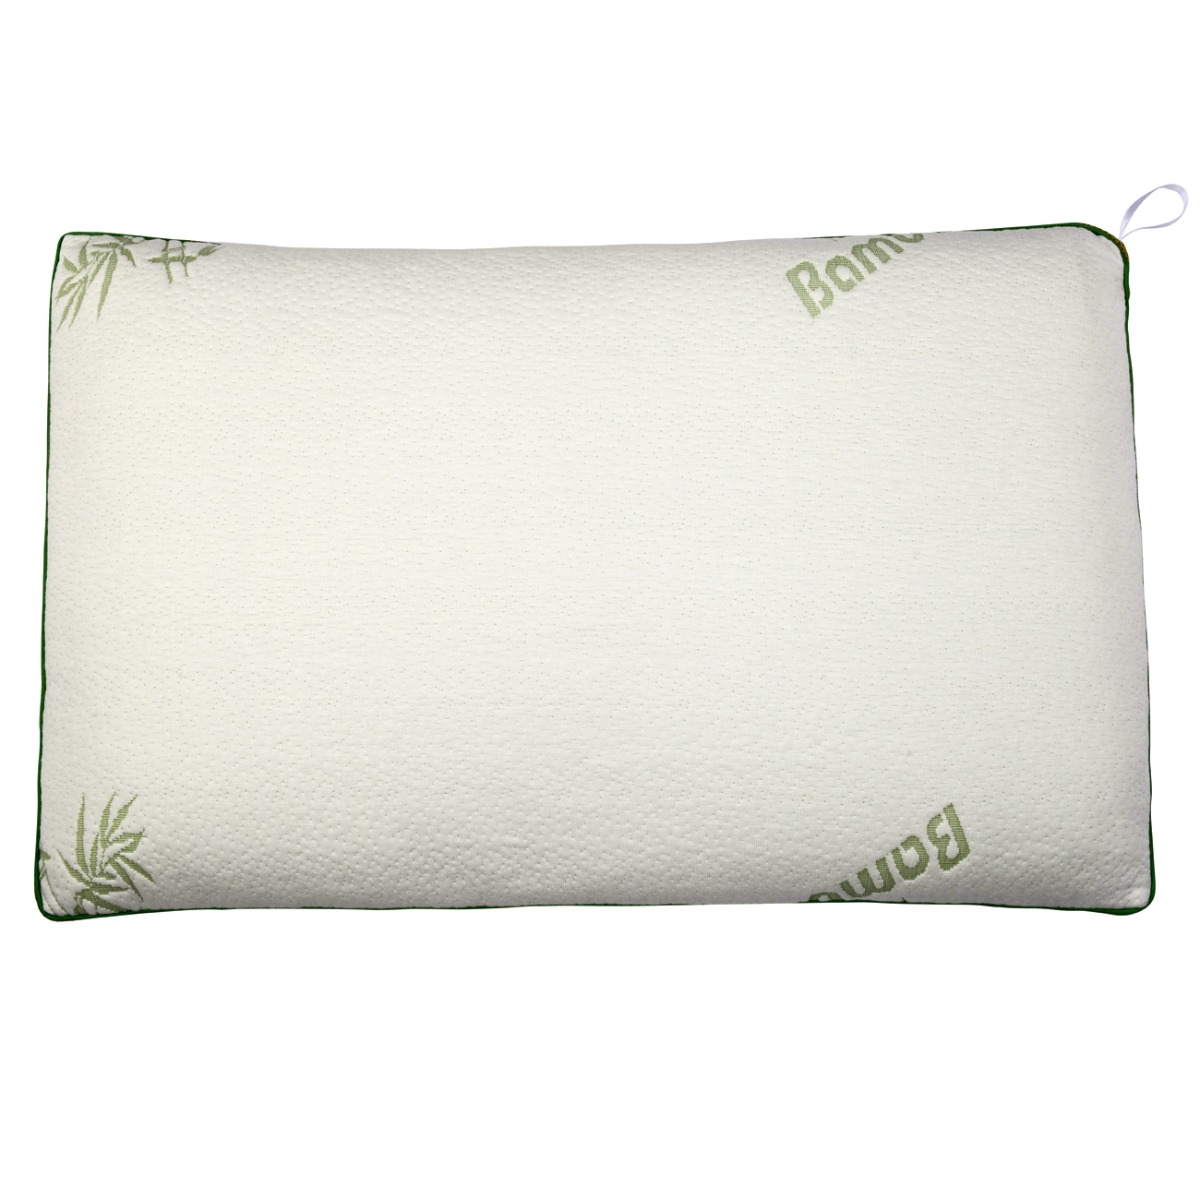 2x Polyester Bamboo Knit Bedding Pillow Washable  Queen Size